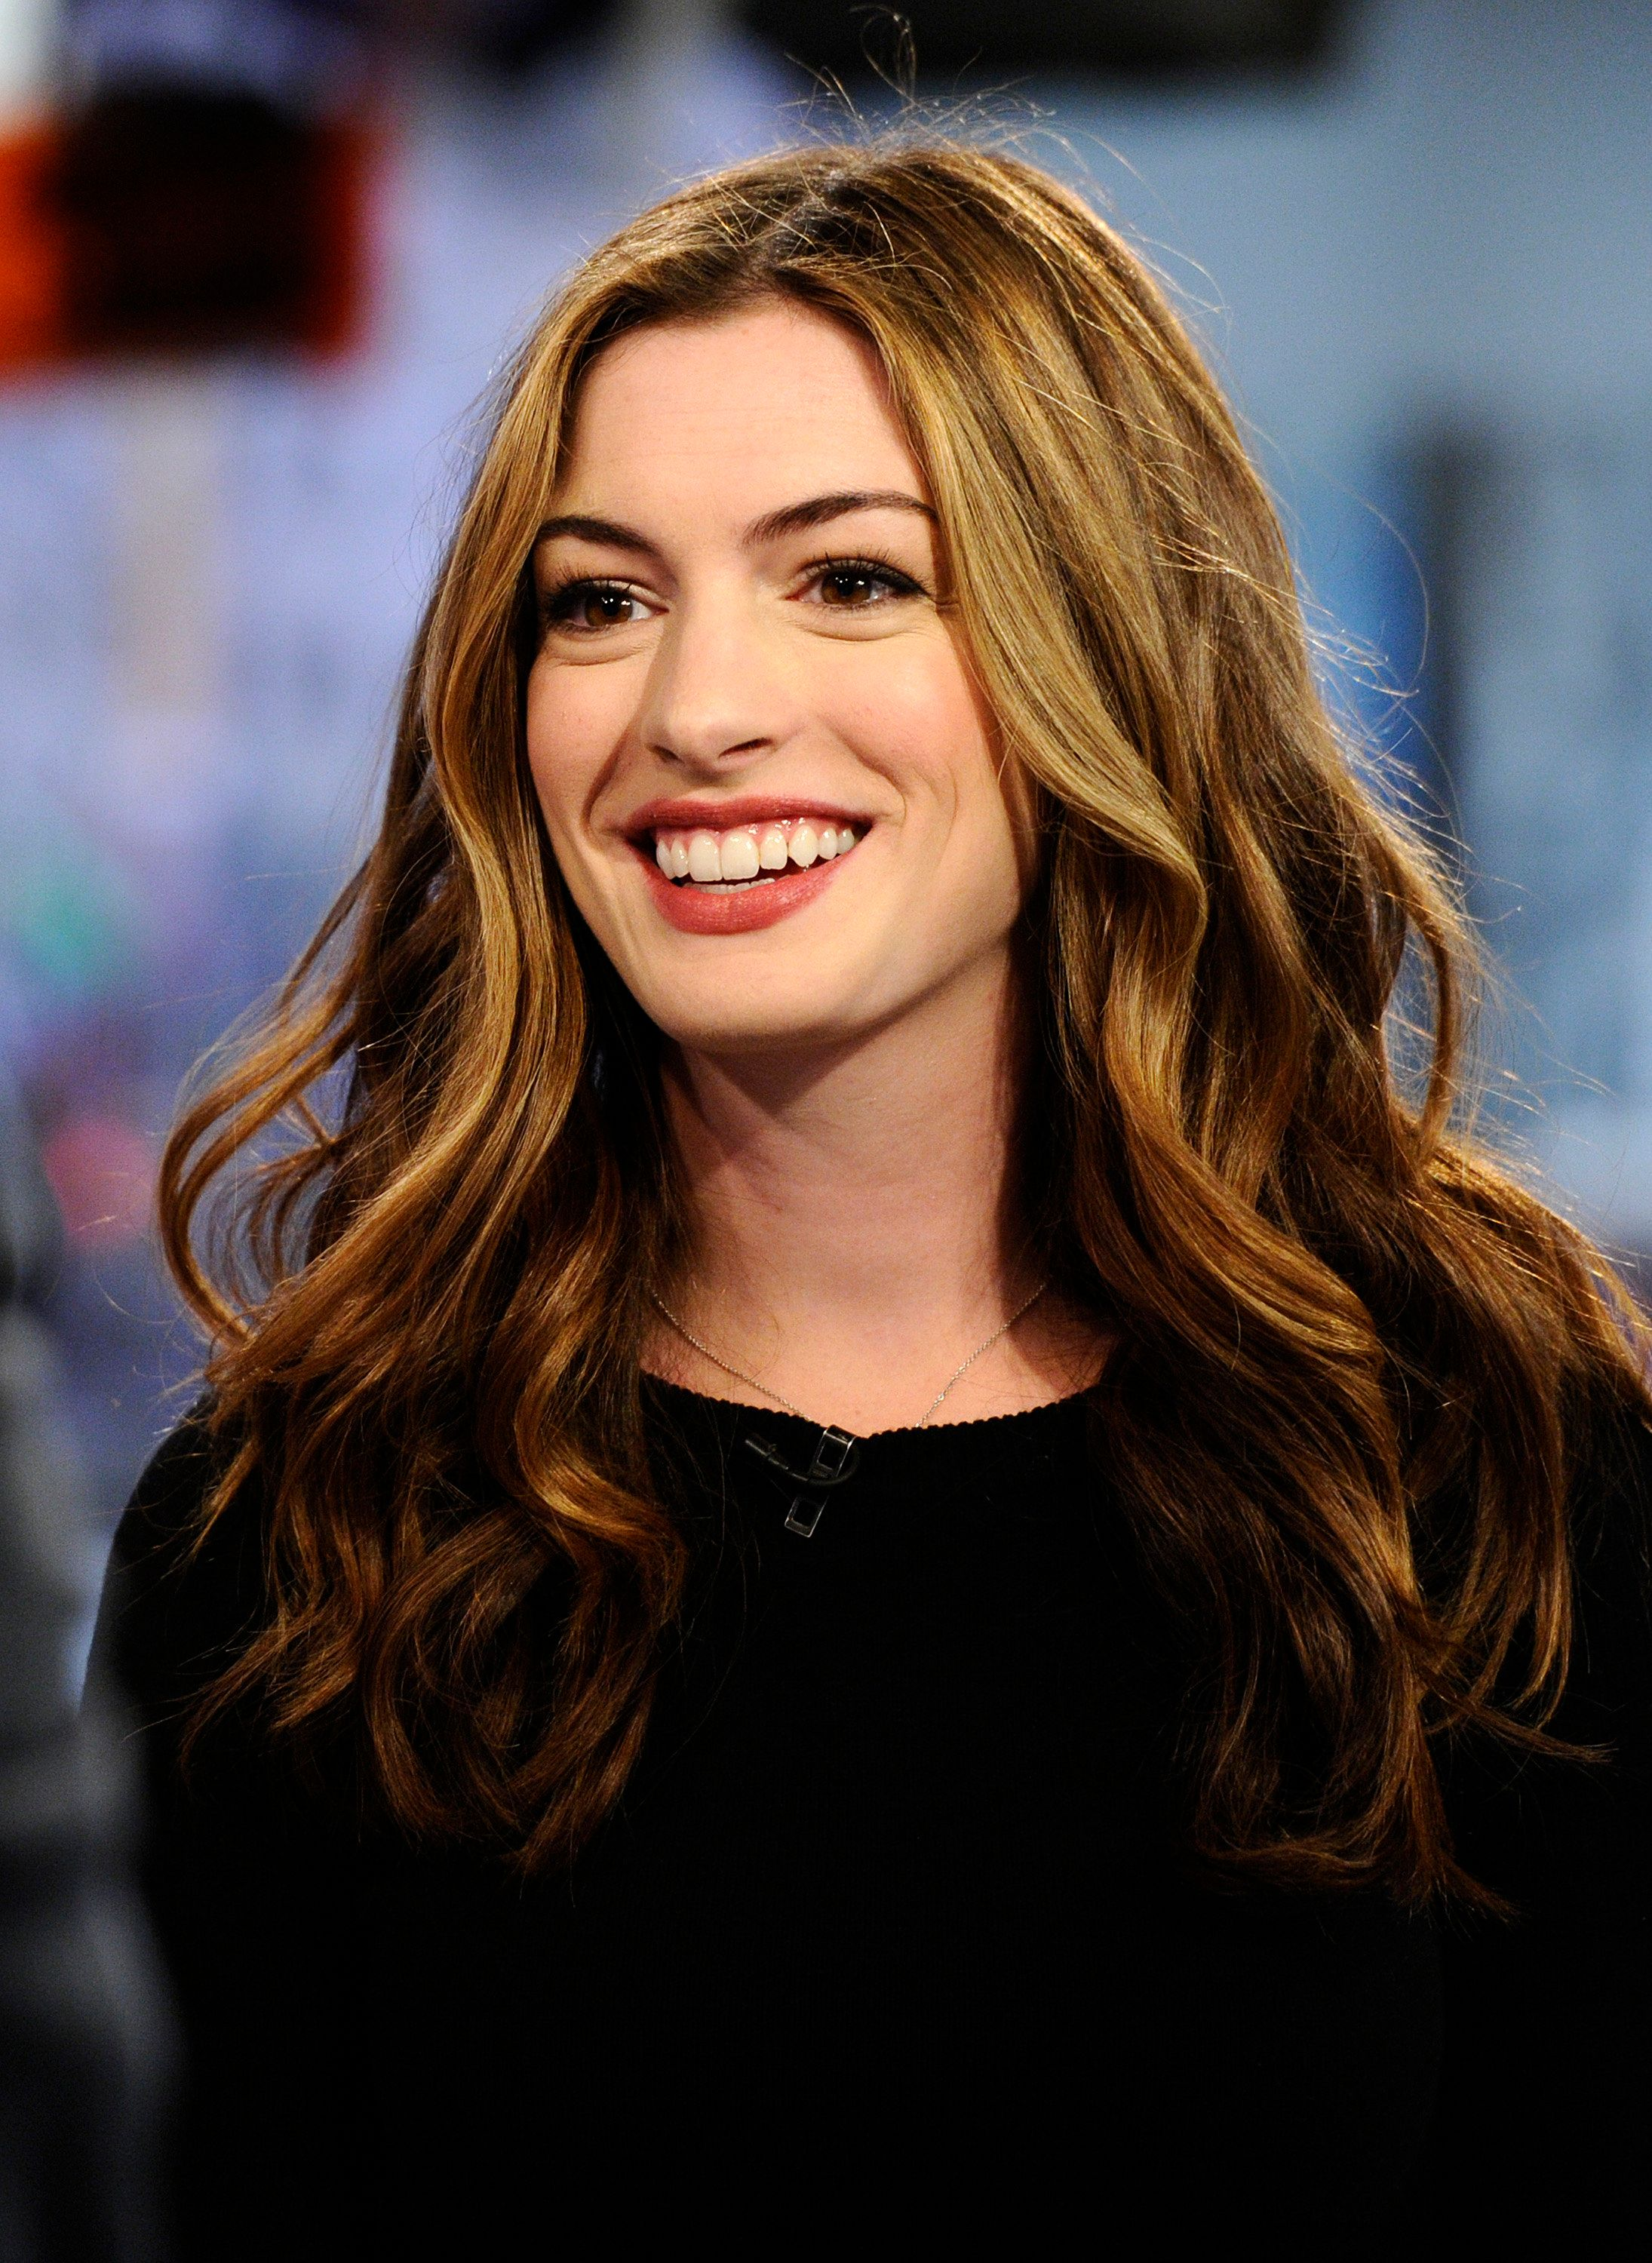 TODAY -- Pictured: Anne Hathaway appears on NBC News' 'Today' show  (Photo by Peter Kramer/NBC/NBCU Photo Bank via Getty Images)